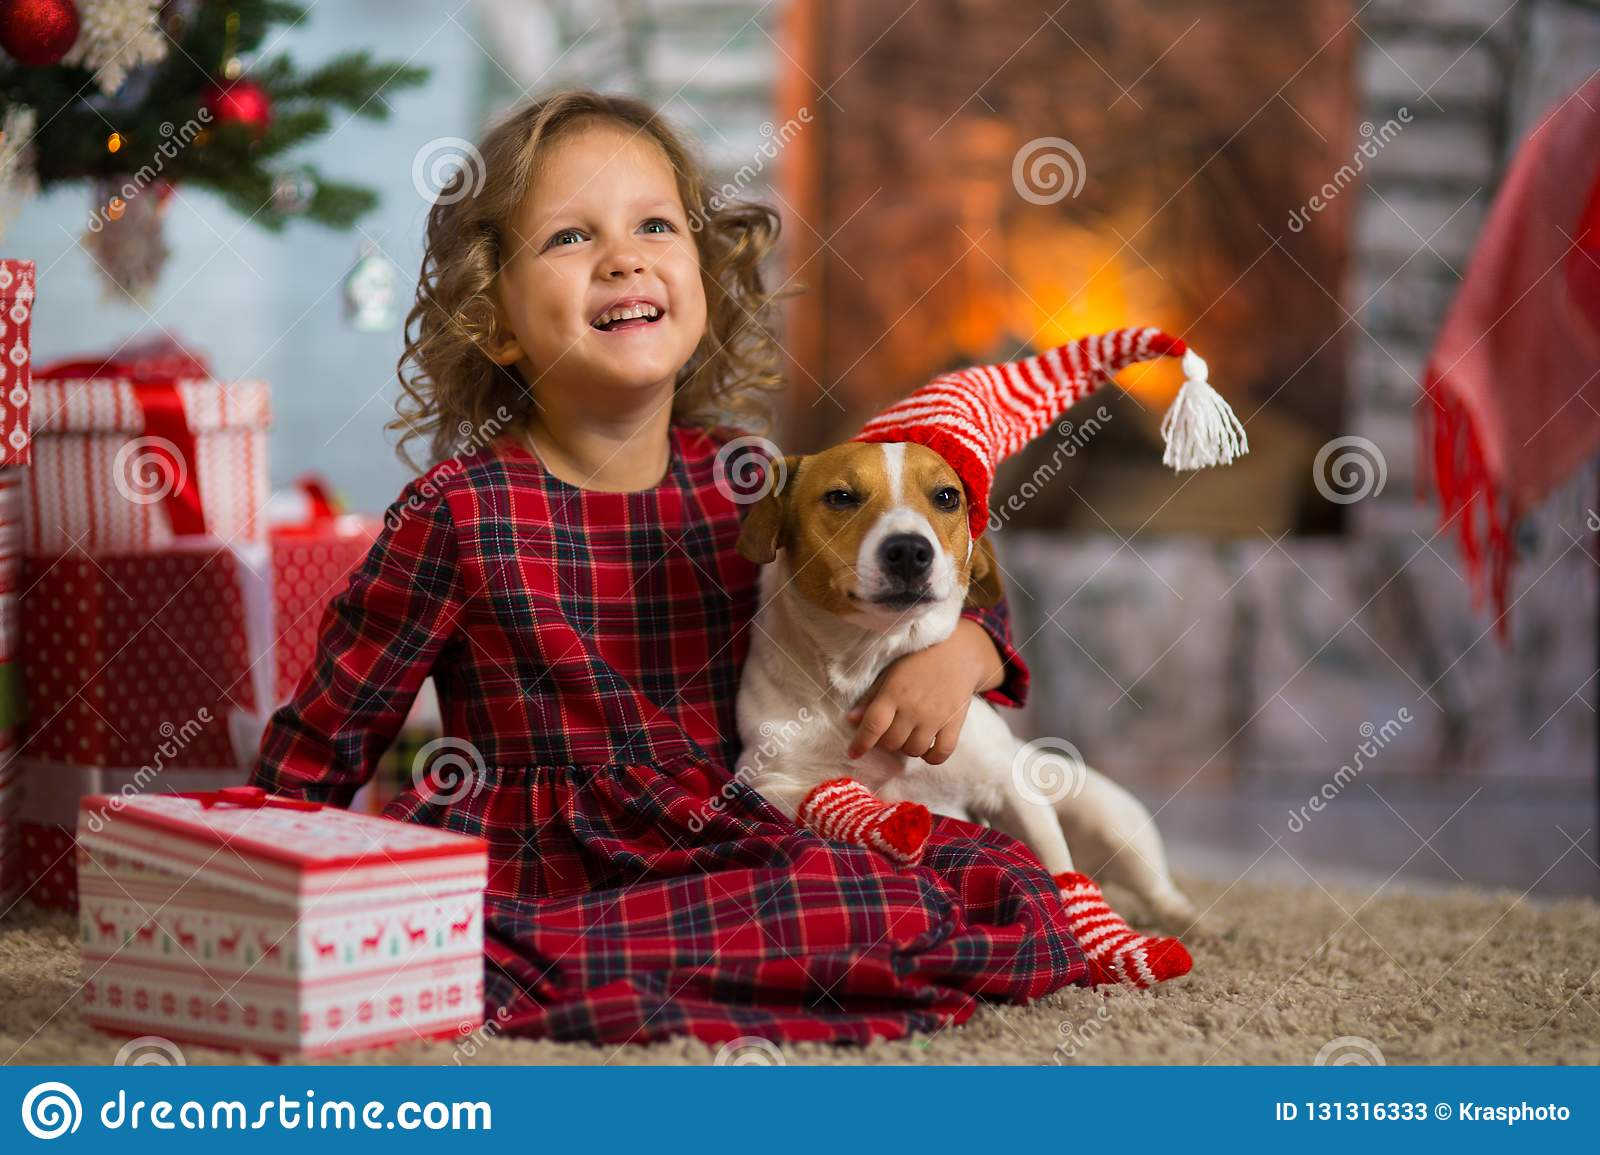 Girl child celebrates Christmas with dog Jack Russell Terrier at